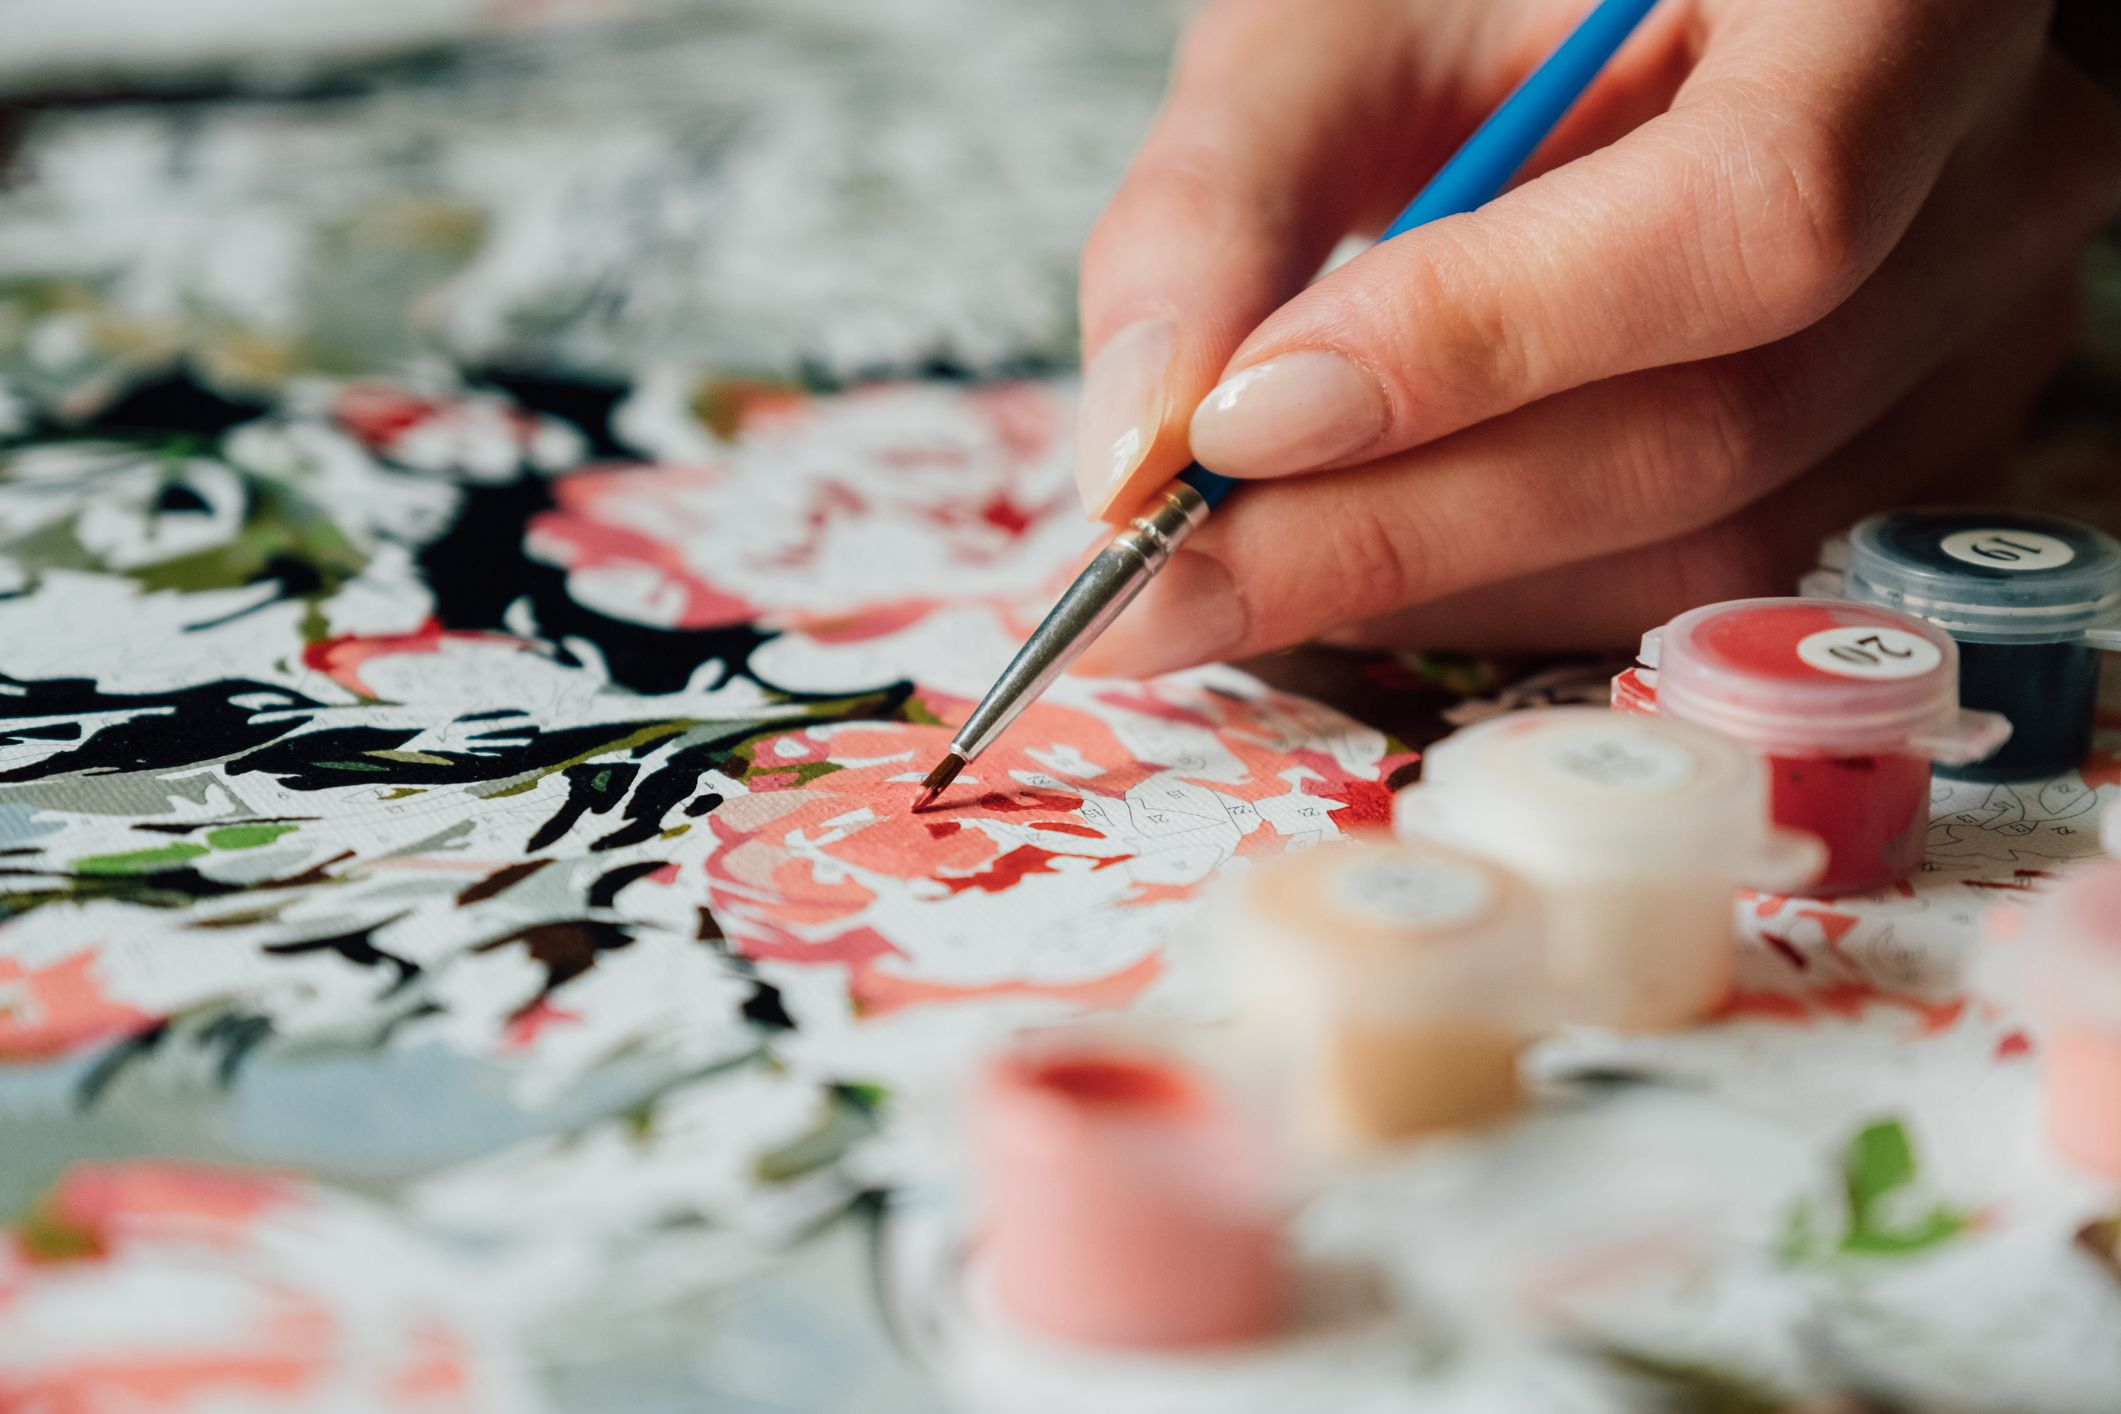 How to Paint with a Paint by Numbers Kit?